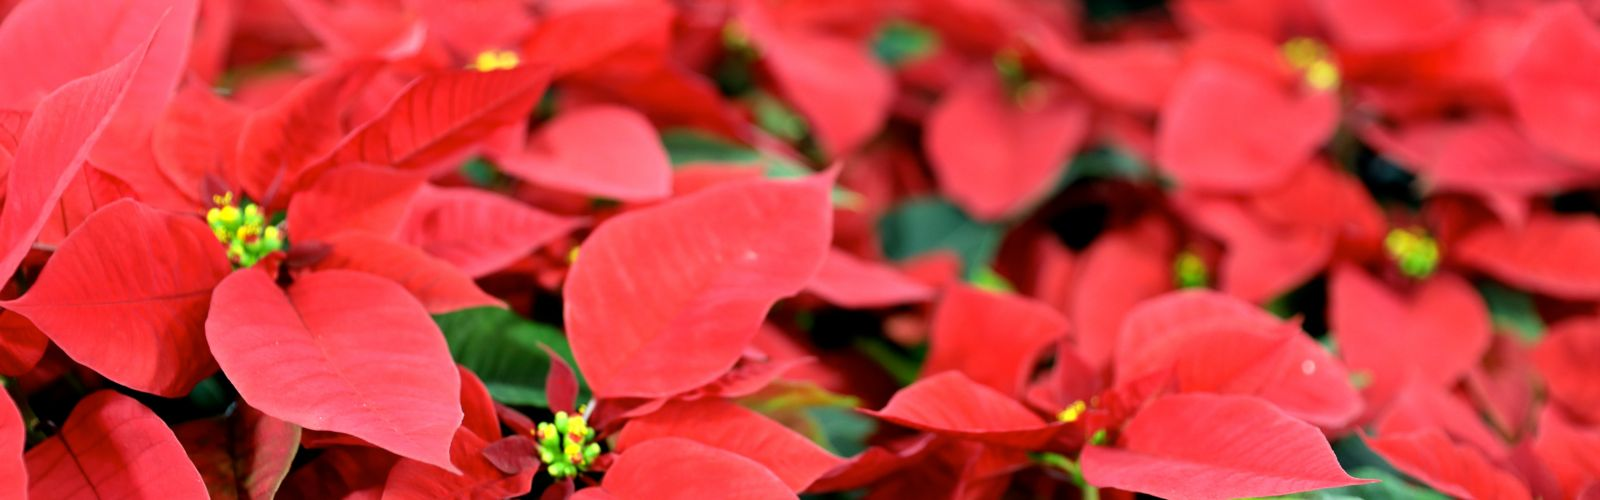 red poinsettia flowers with yellow centers with green leaves